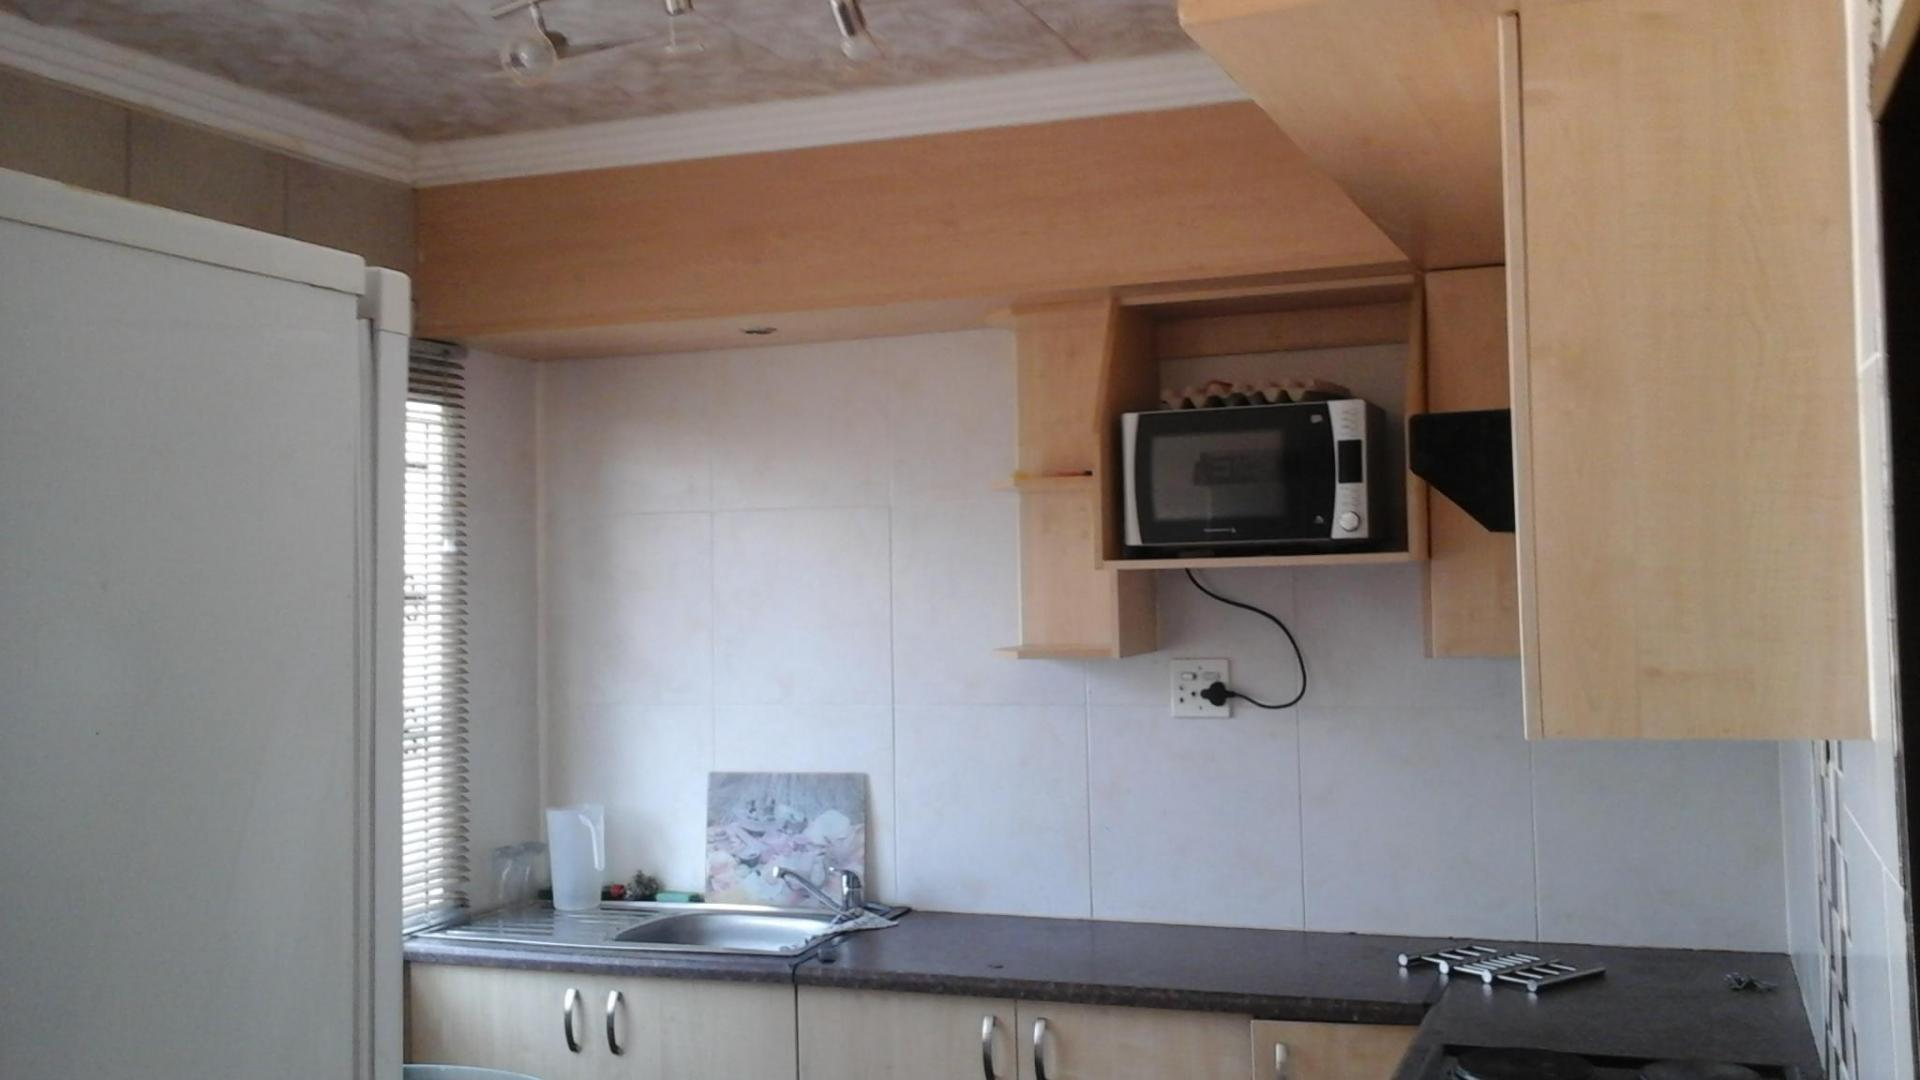 Kitchen of property in Cullinan